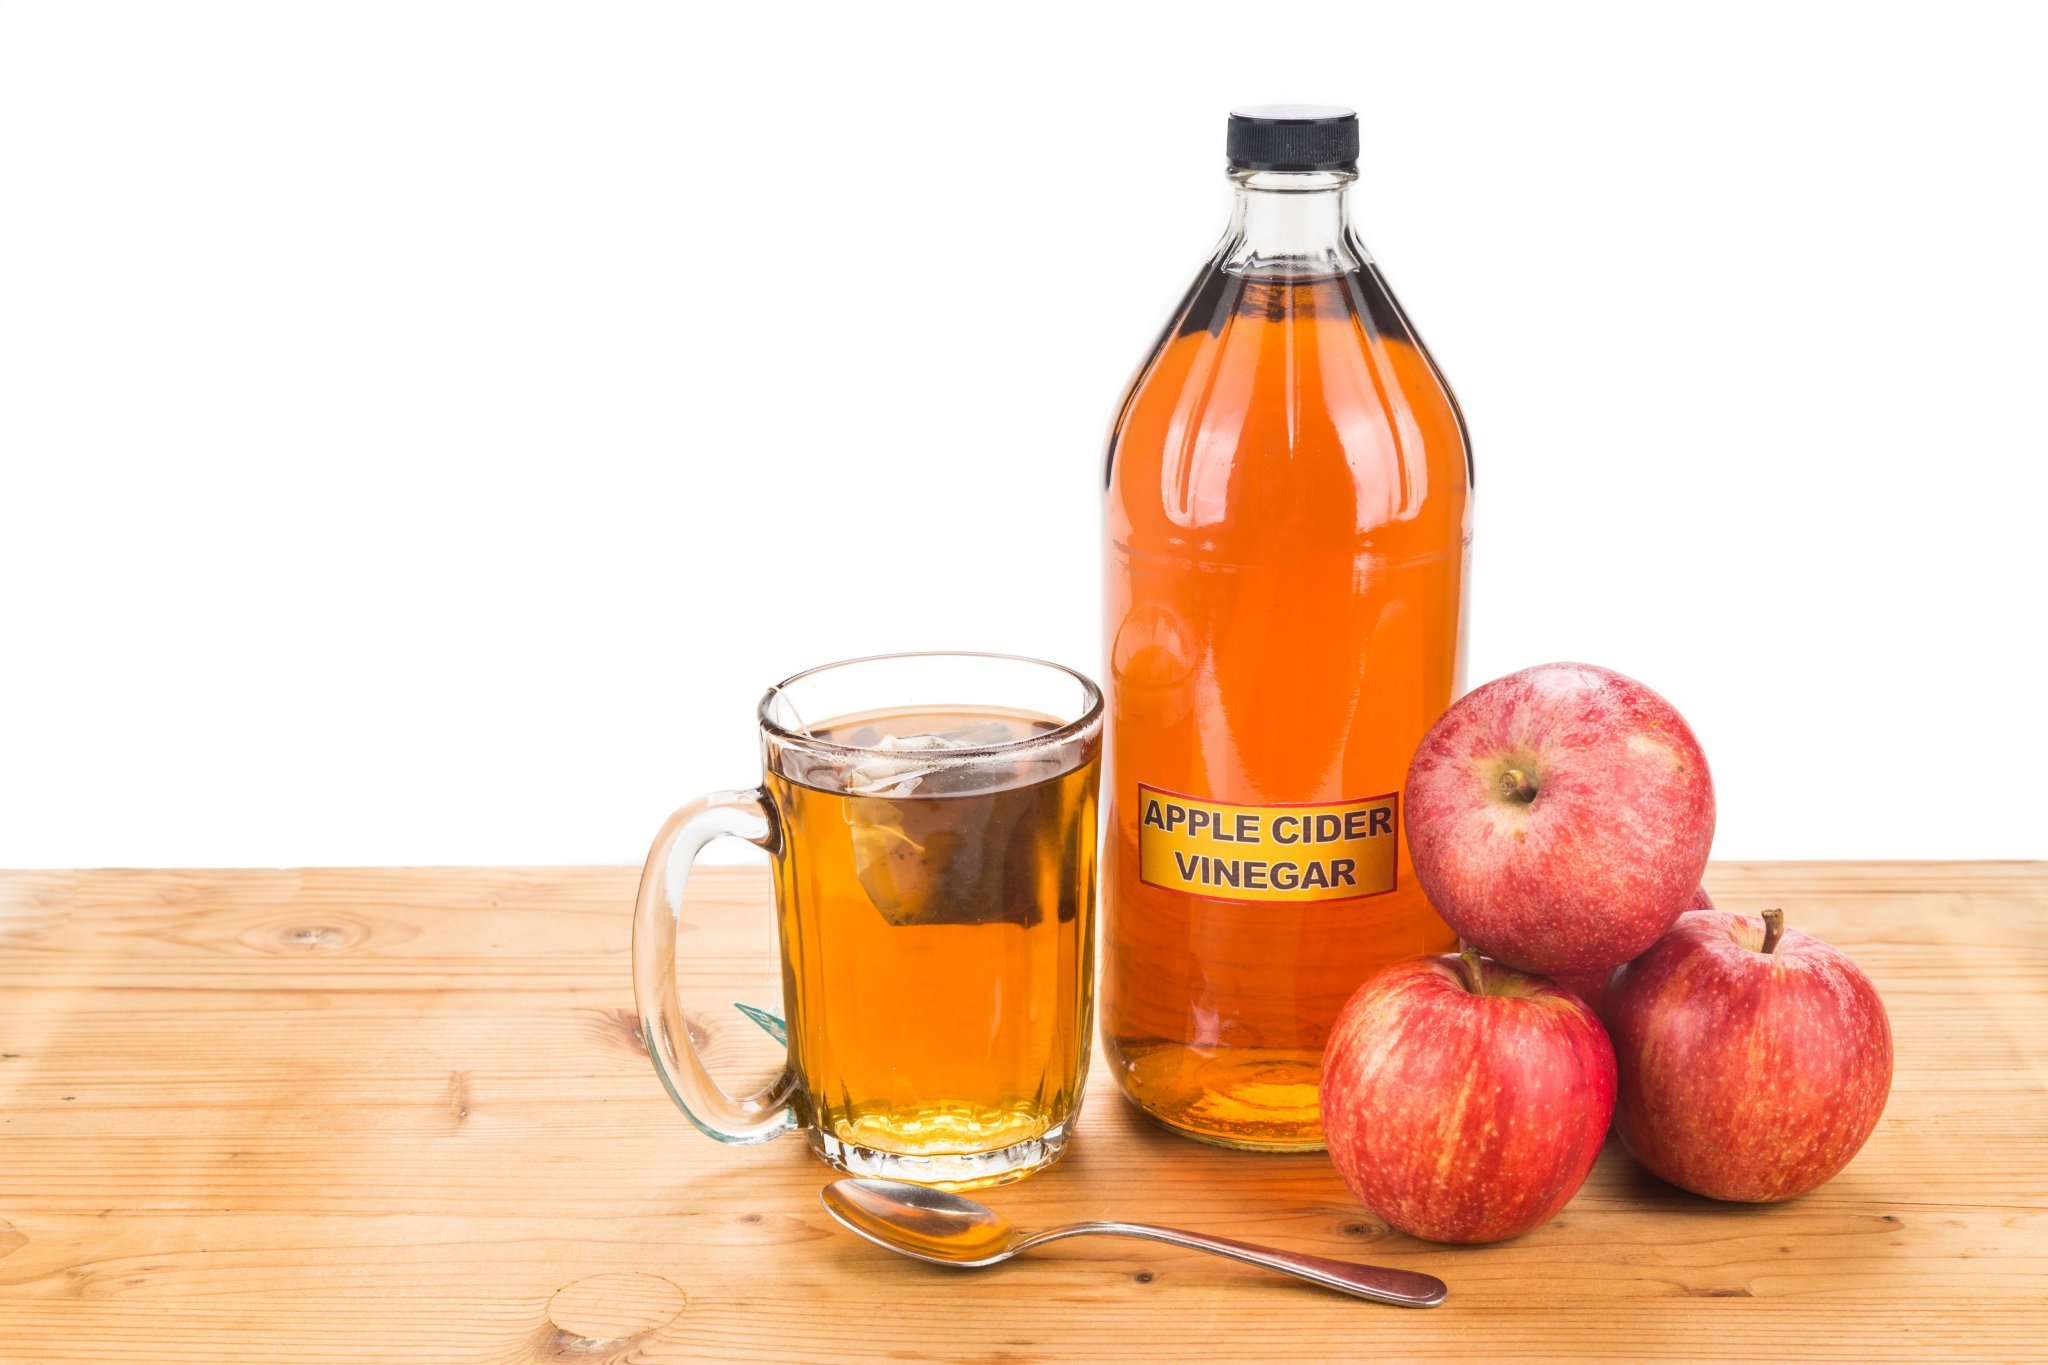 Reasons Why Apple Cider Vinegar Is So Good For You